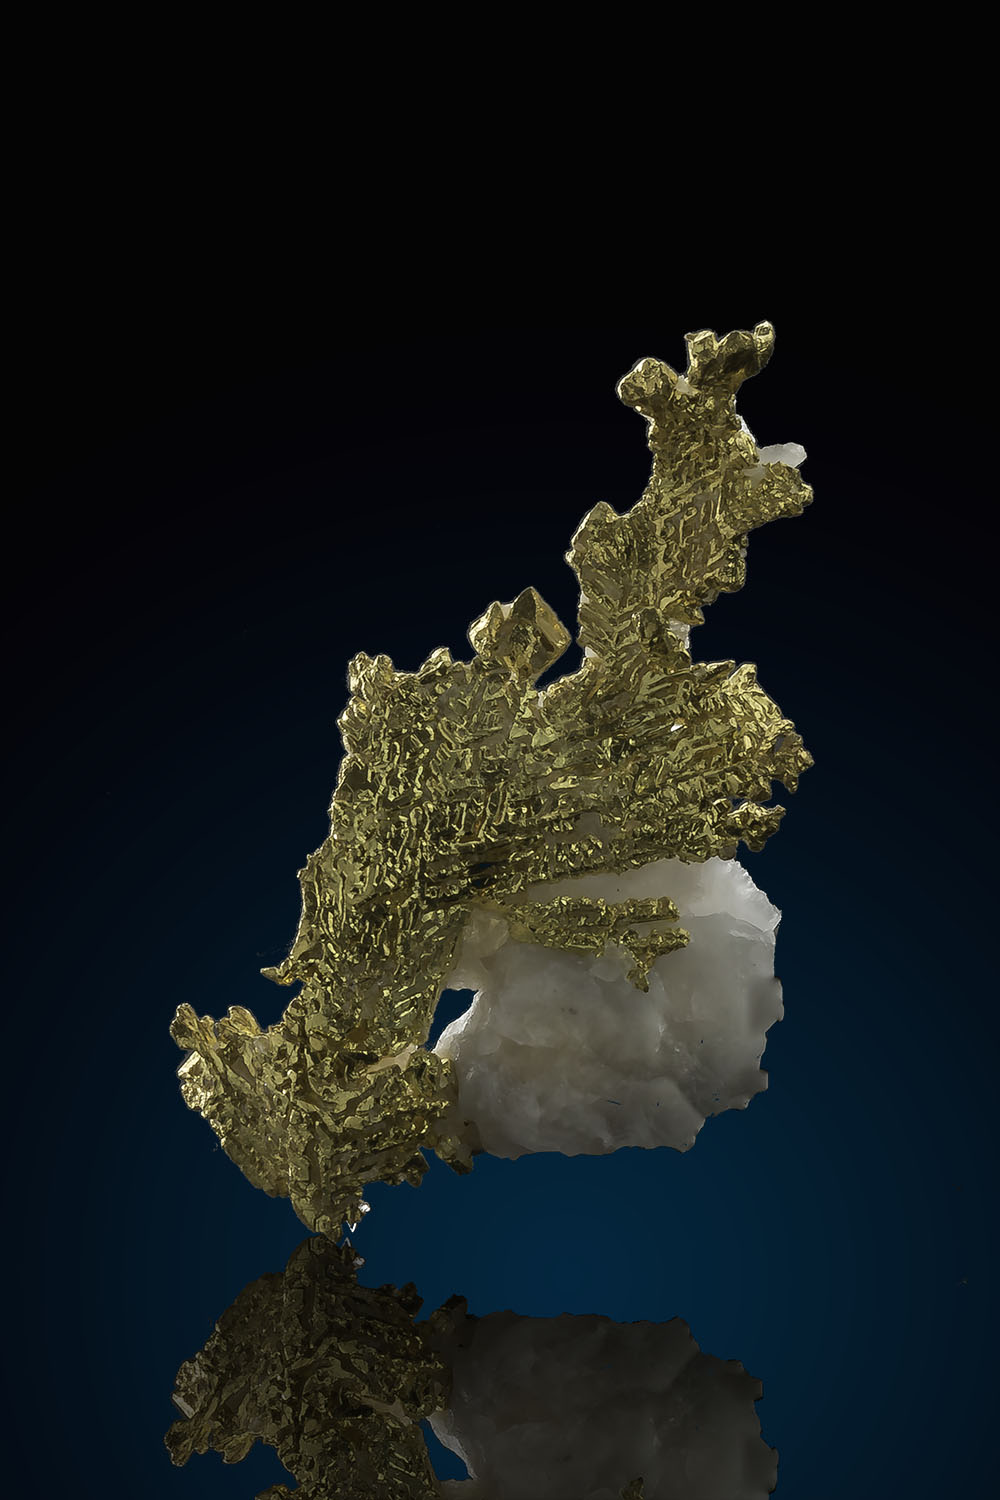 Beautiful Gold crystals in Quartz - Eagles Nest Gold Mine